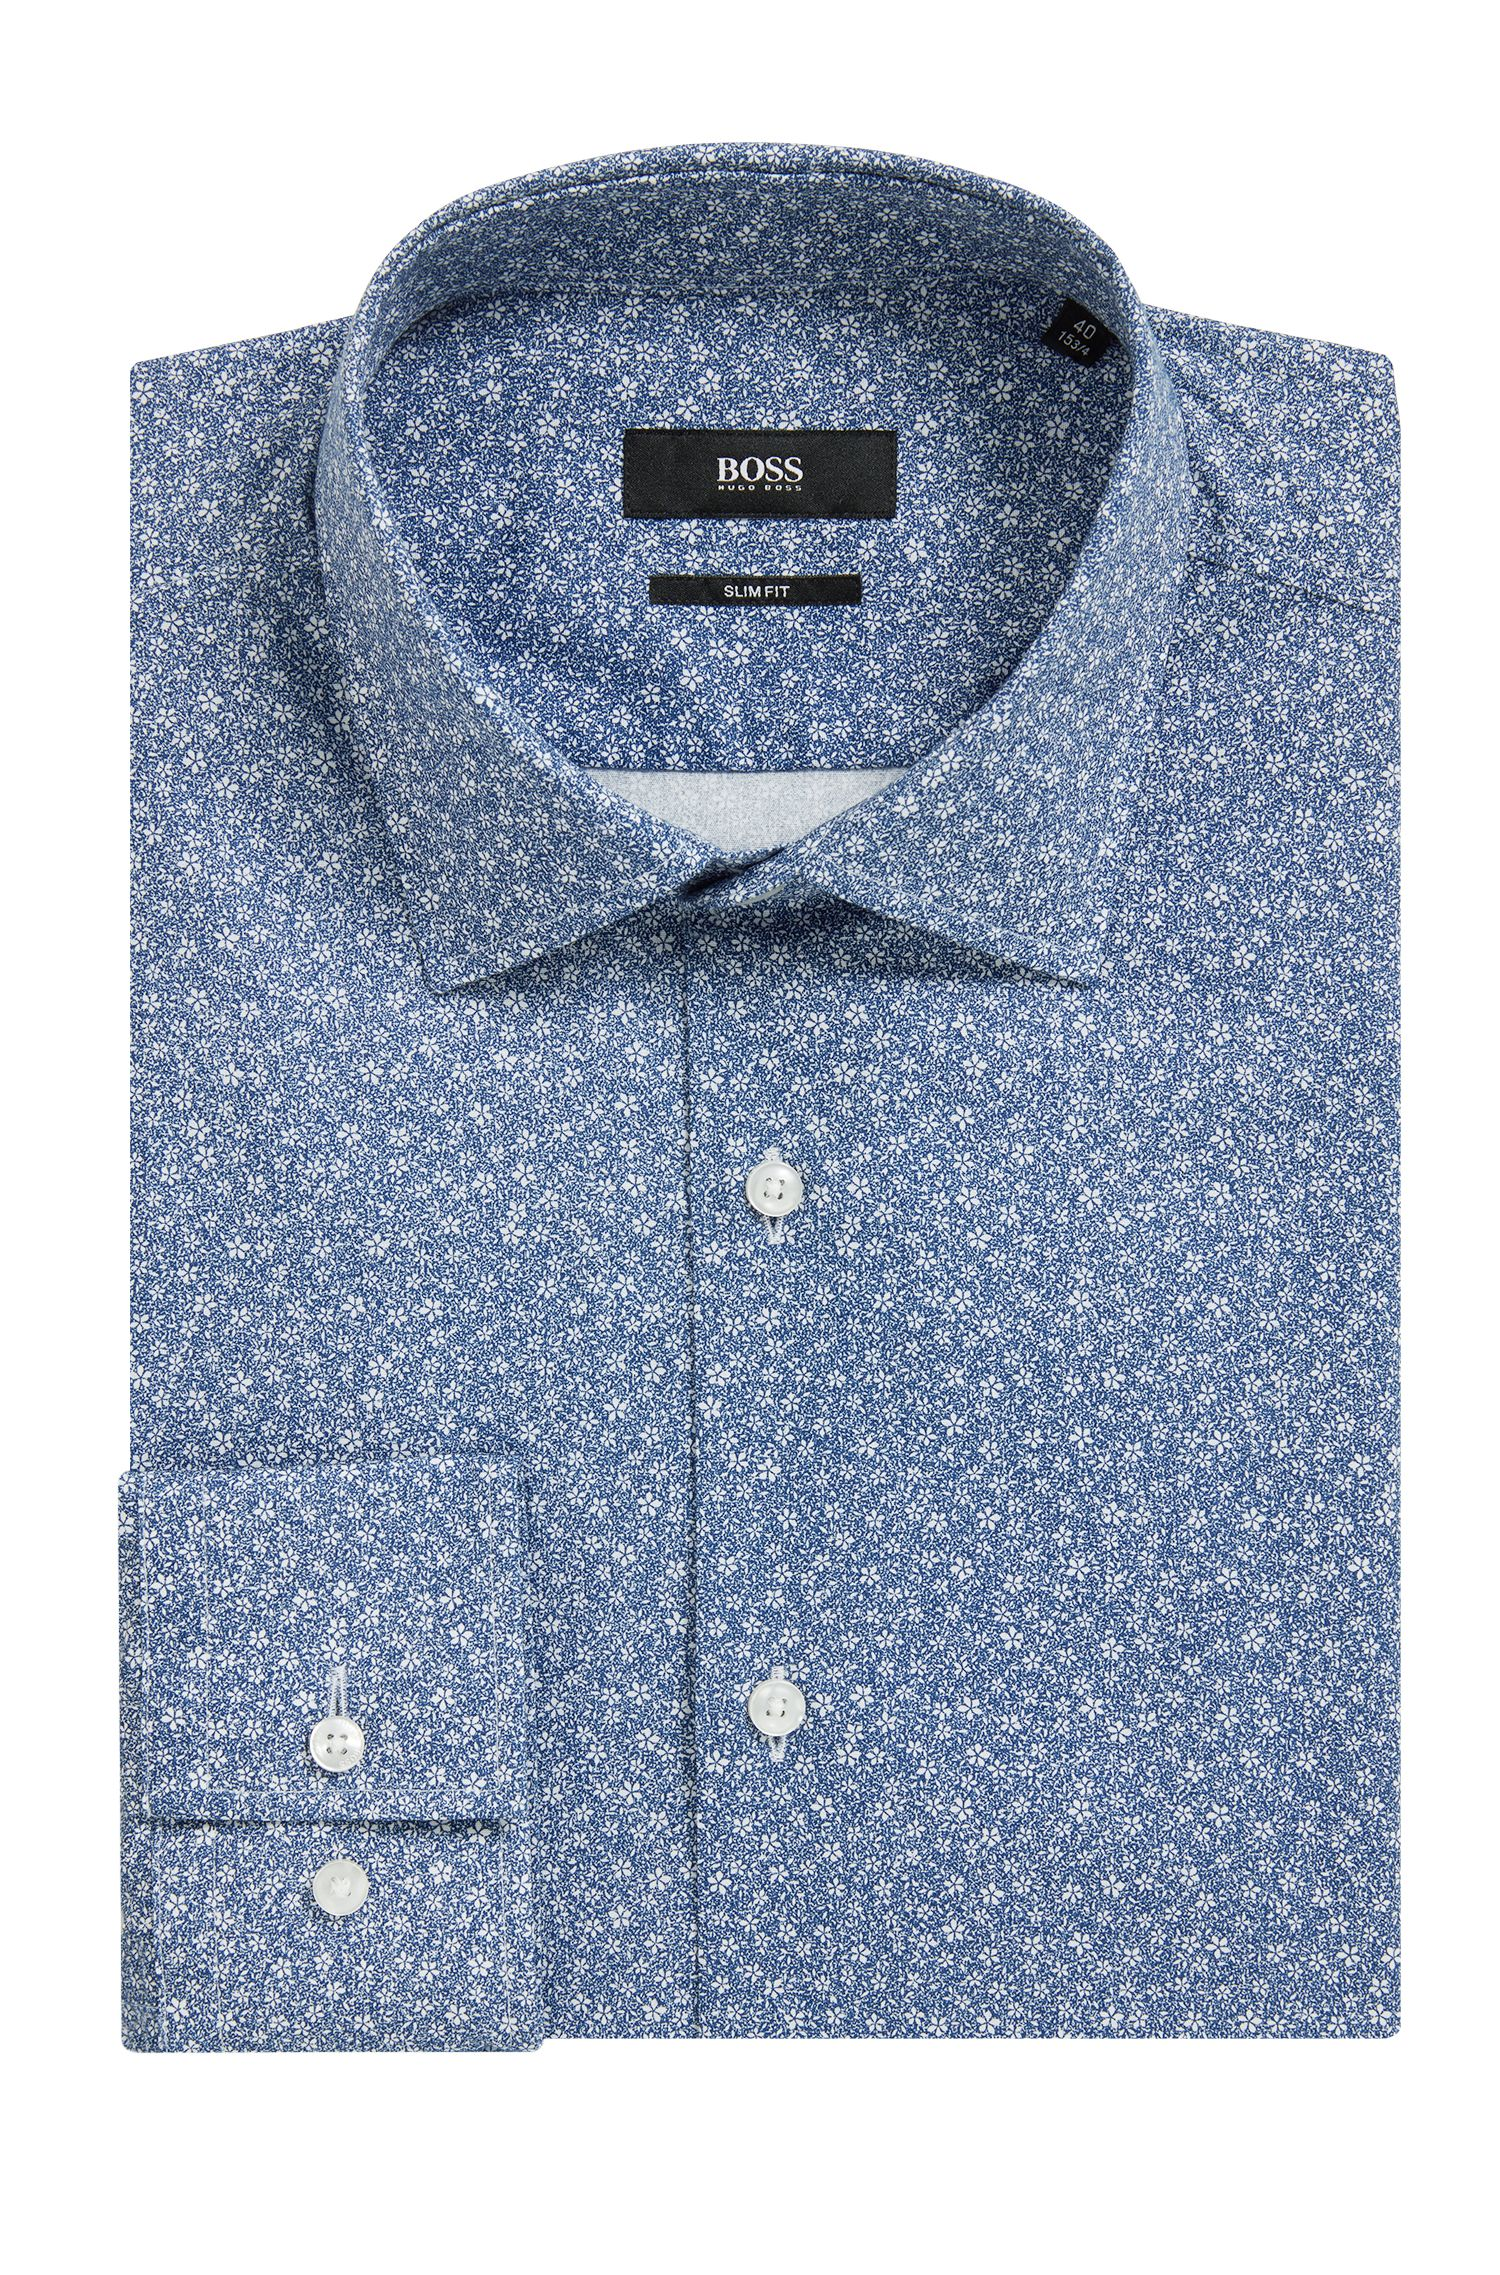 Floral-Print Cotton Dress Shirt, Slim Fit | Jenno